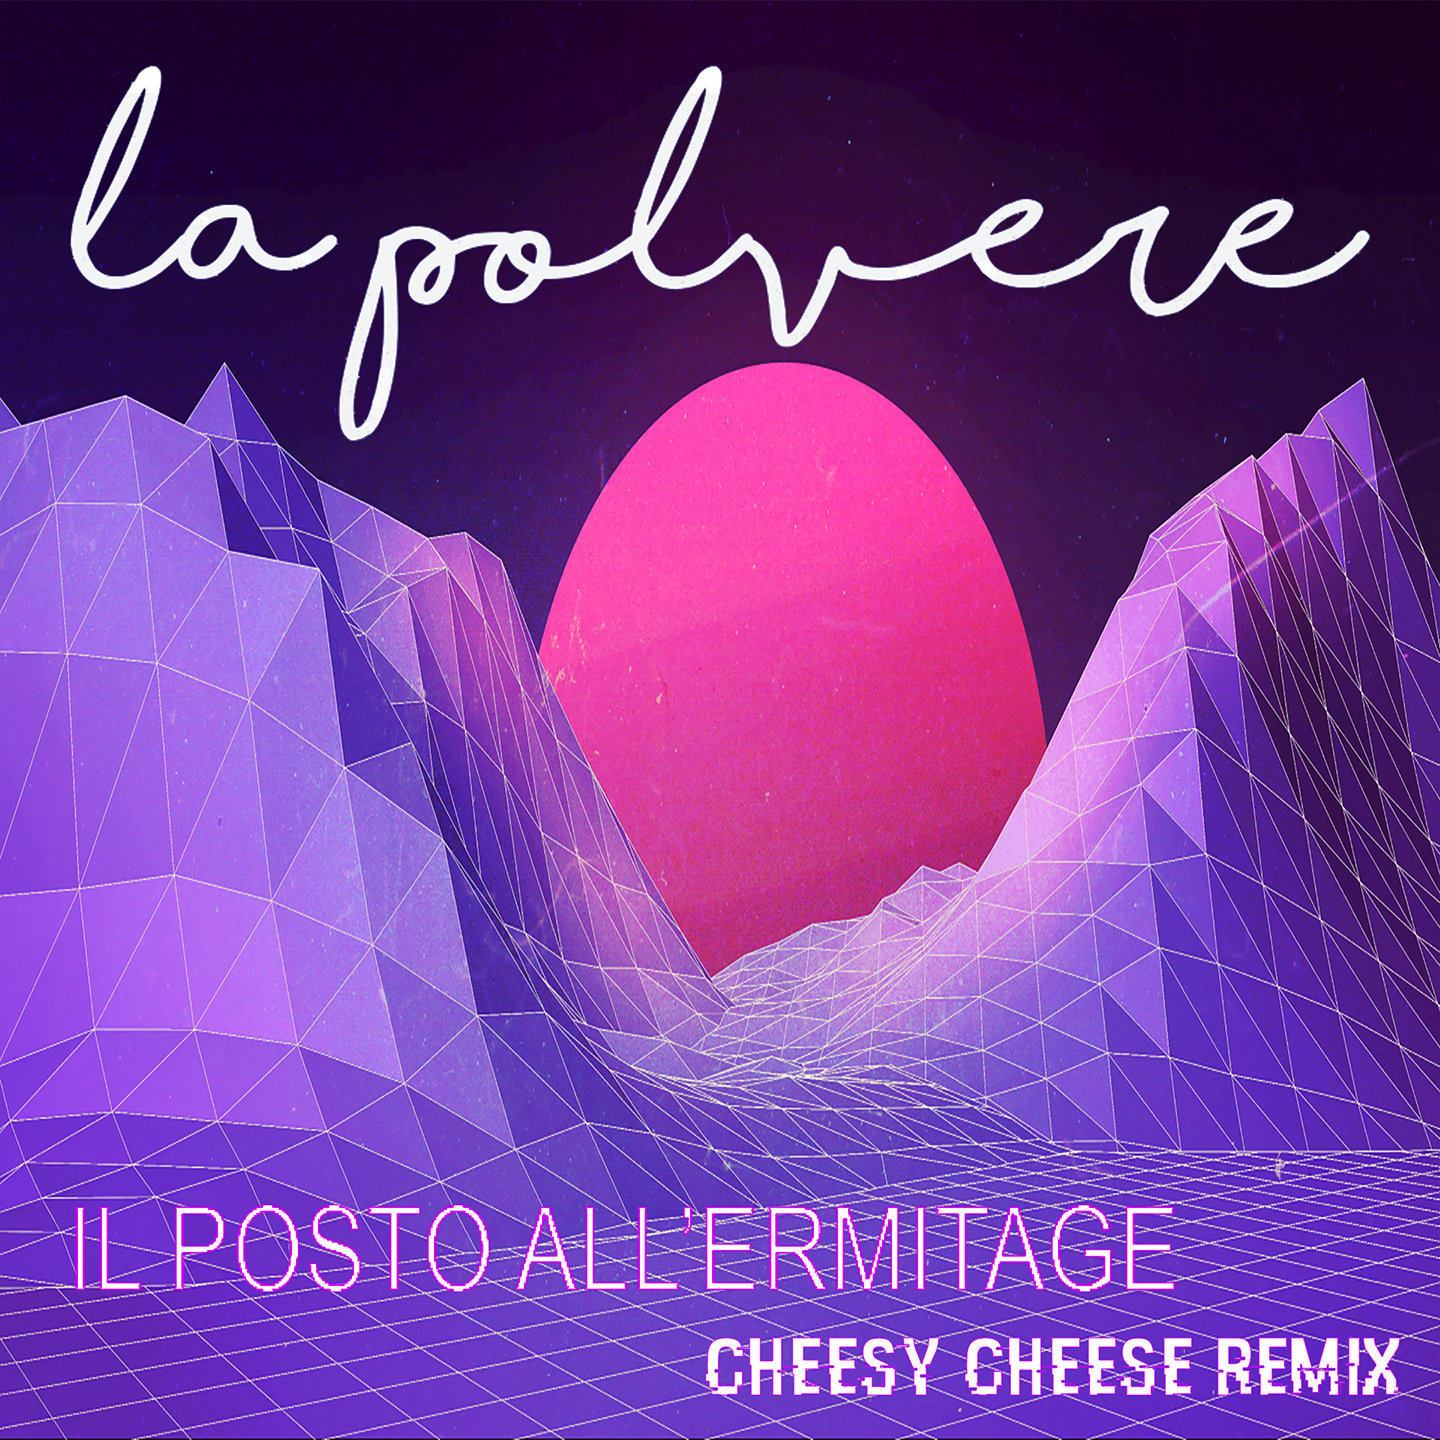 Il Posto all'Ermitage (Cheesy Cheese Remix)